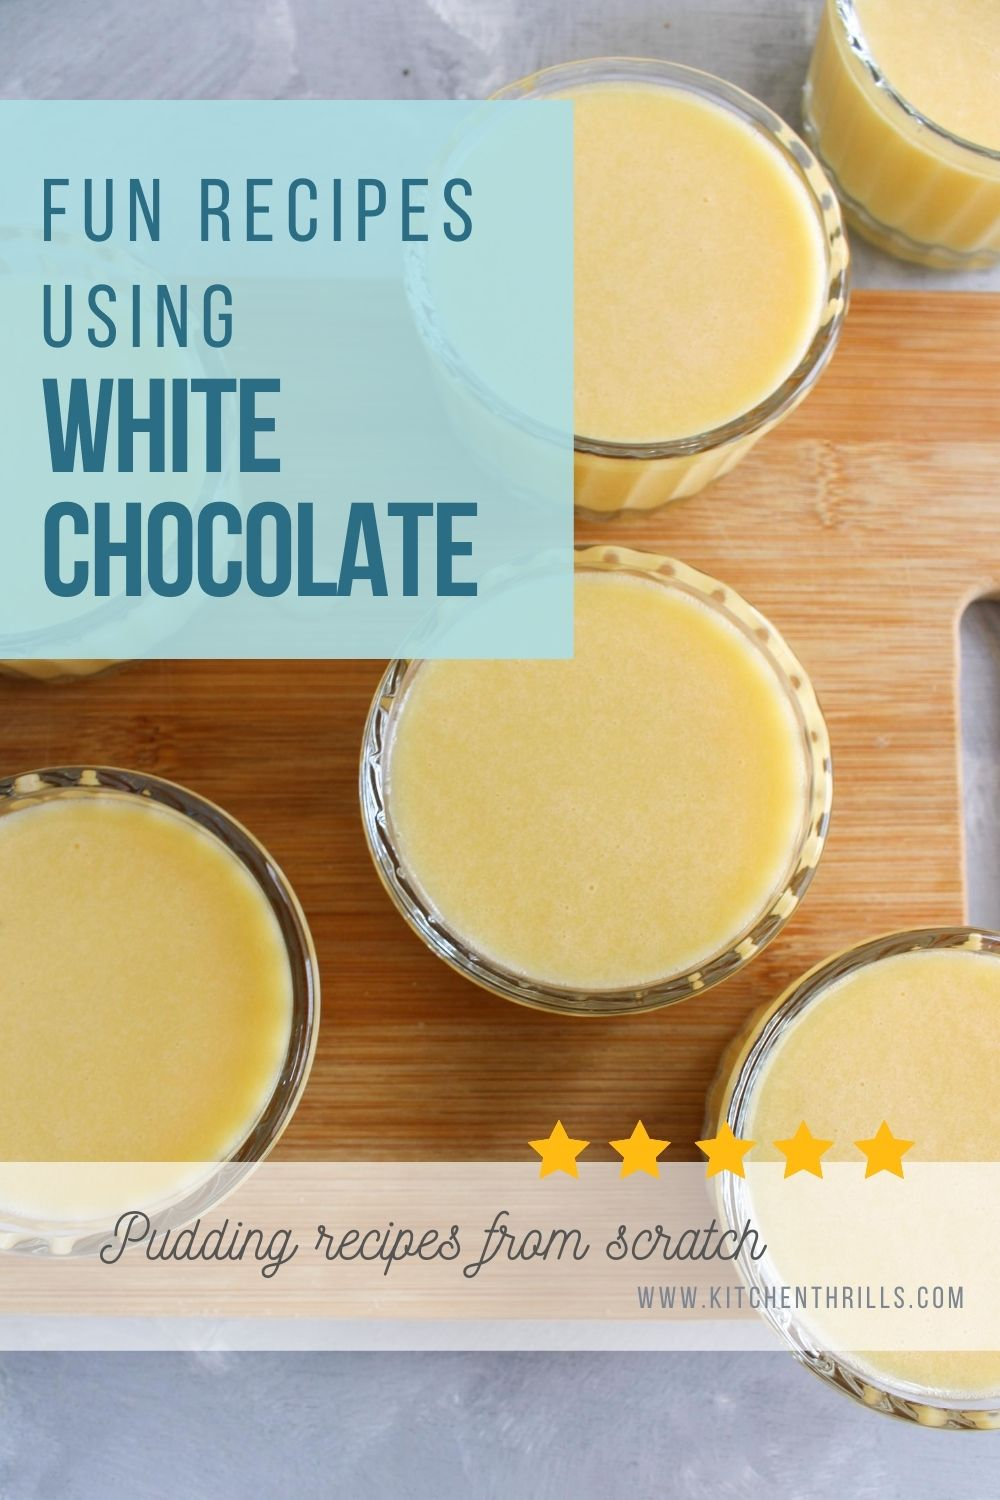 Gluten free pudding recipe using white chocolate and the best kid friendly dessert better than store bought pudding